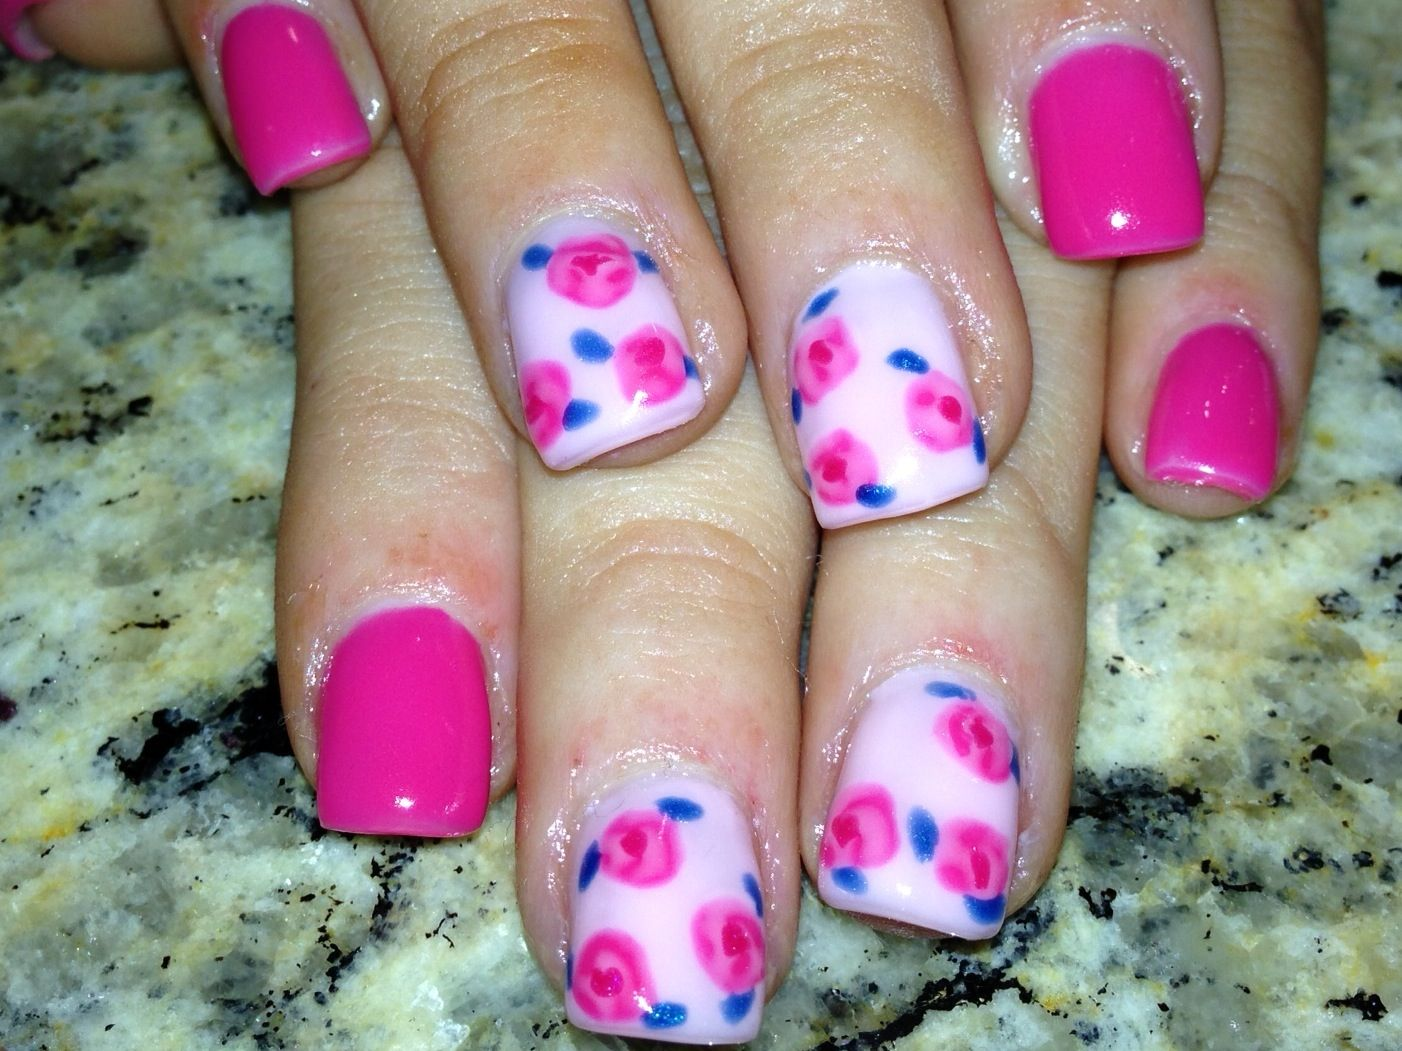 Kentucky derby nails | nail art | Pinterest | Kentucky derby ...